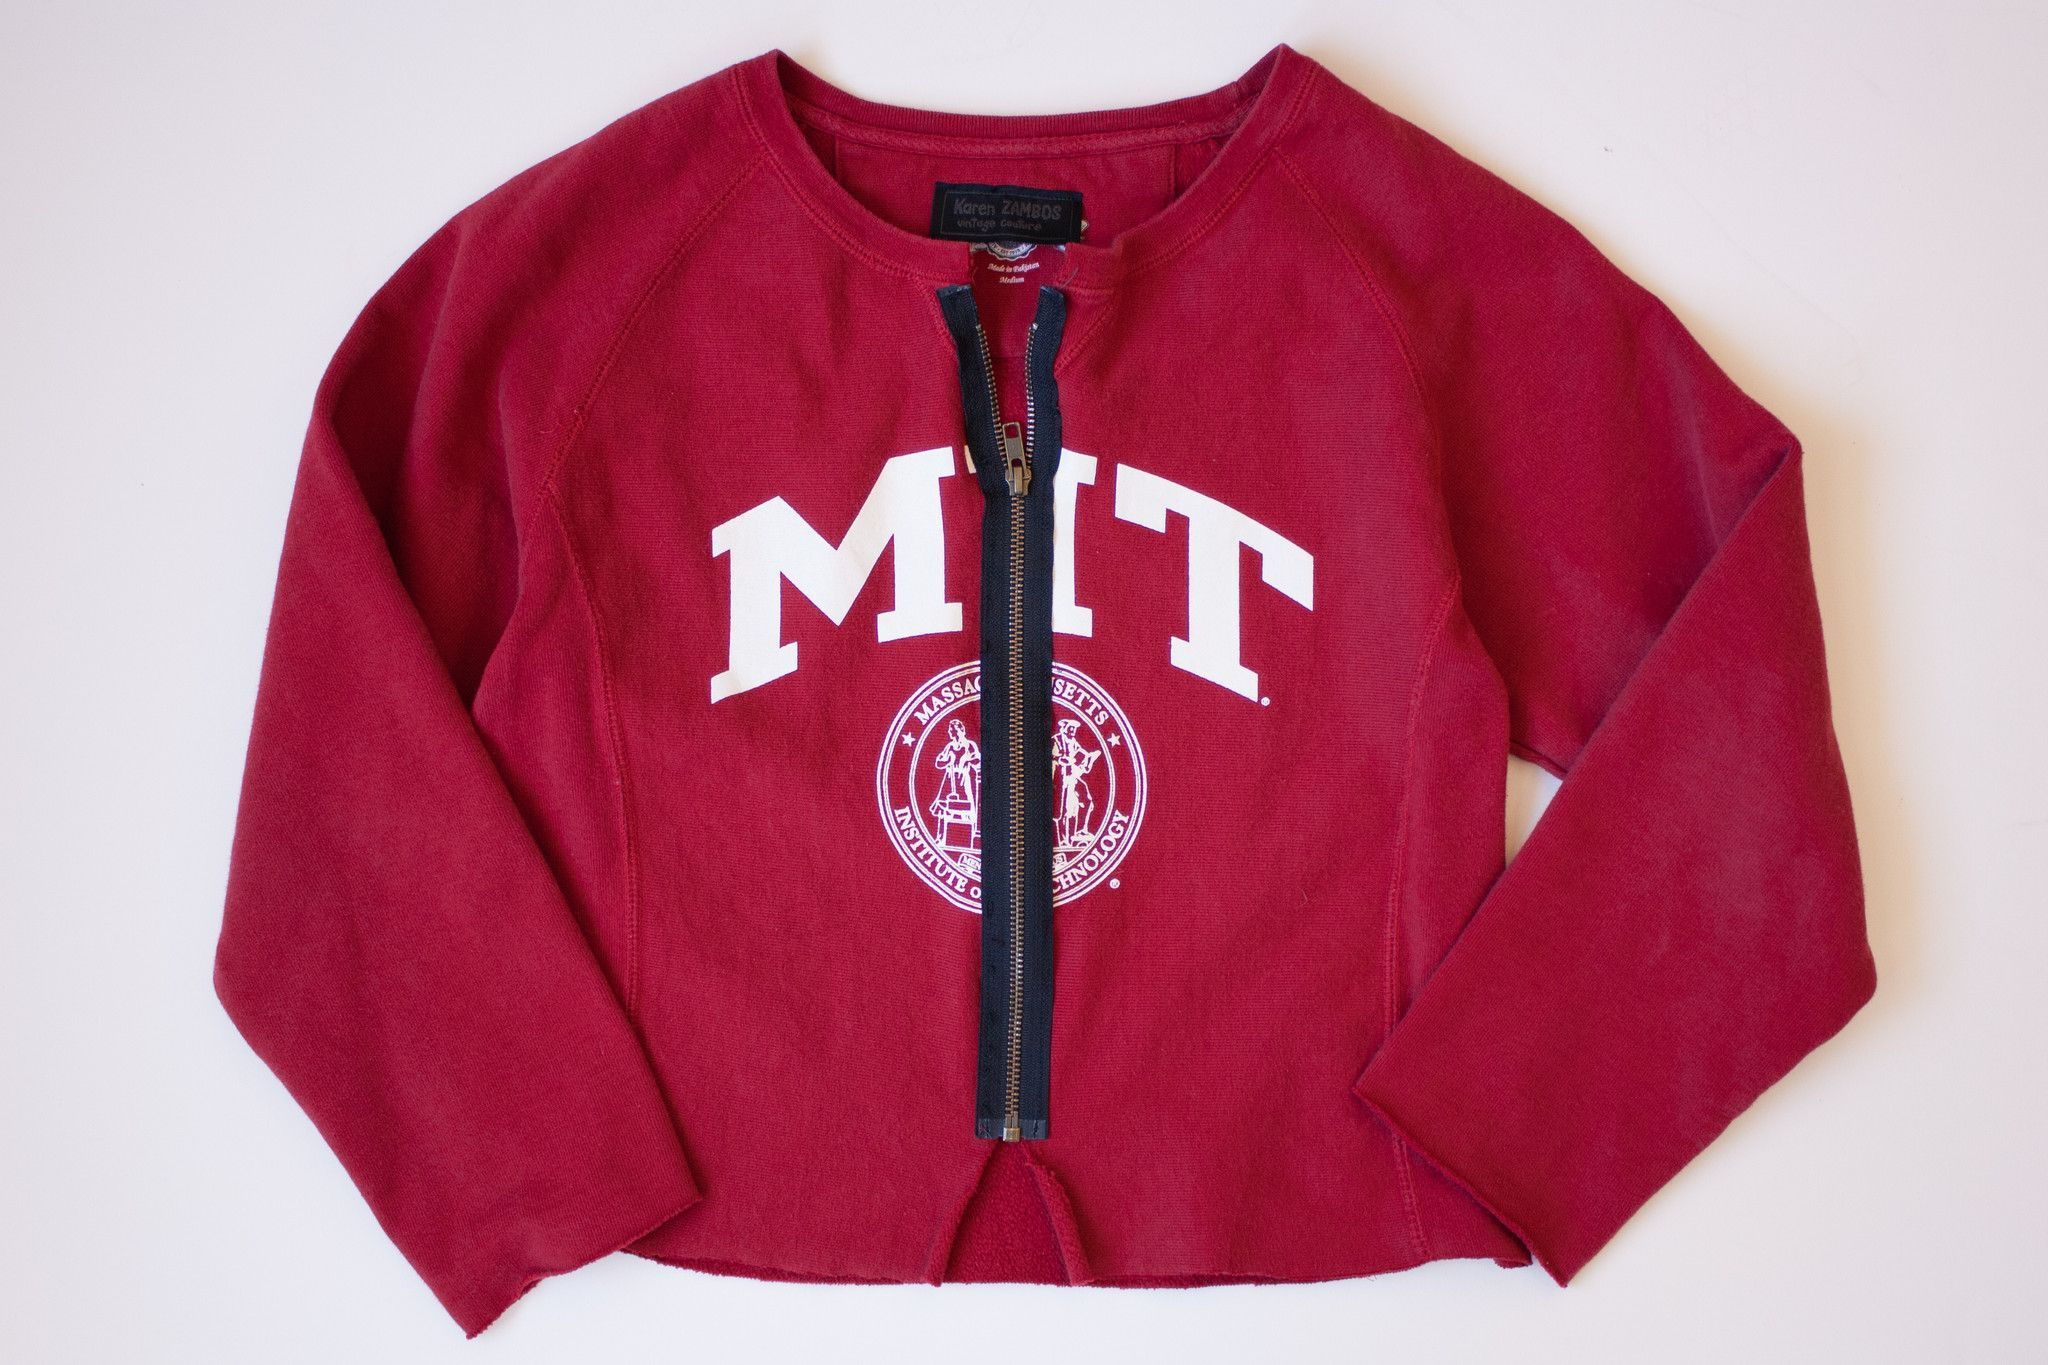 MIT vintage sweatshirt with exposed zipper. Customized by Karen Zambos. One of a kind. Fits like size Medium/Large.